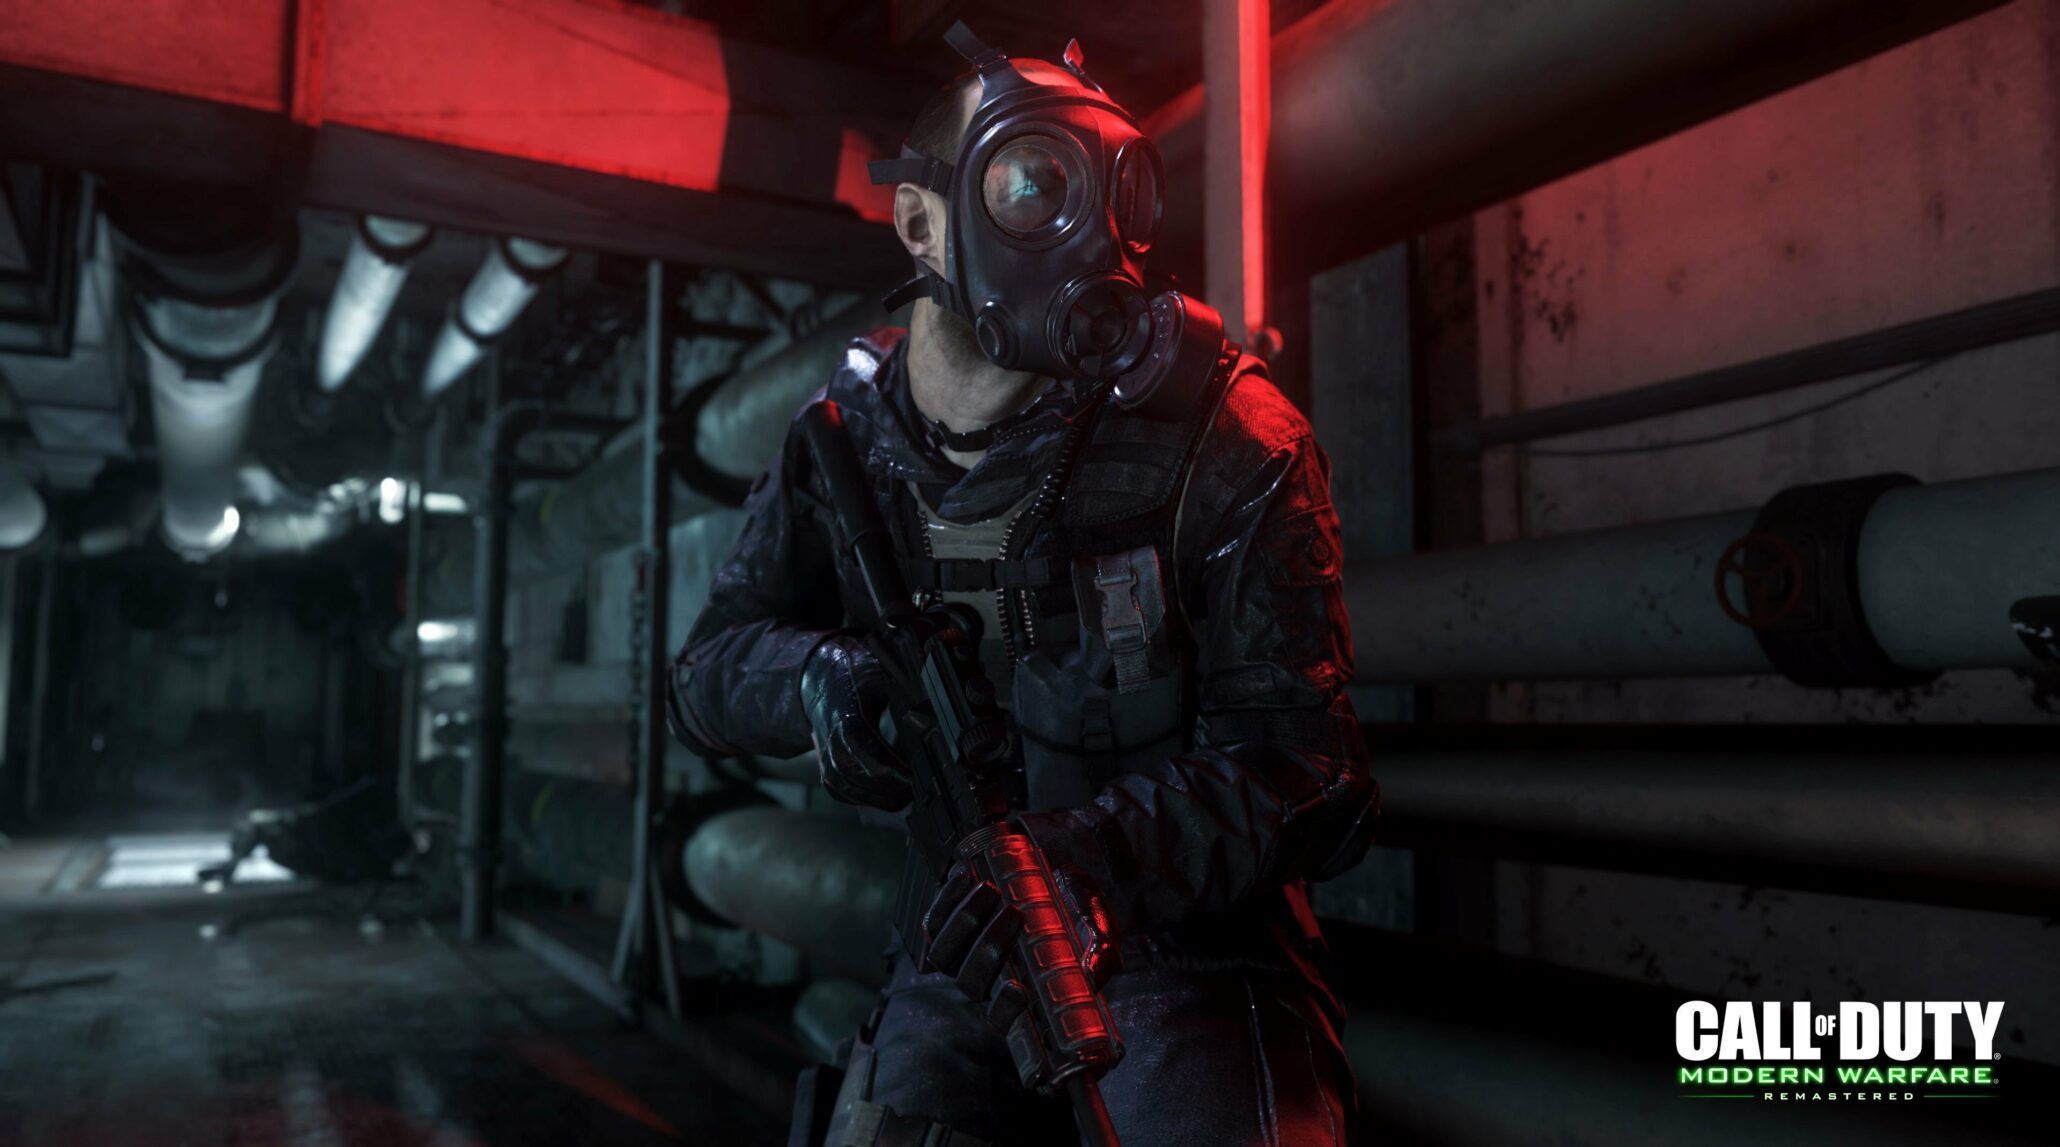 Call Of Duty Modern Warfare Remastered May Not Be Playable Without Game Ps4 Infinite Disc Trophies Emerge Online